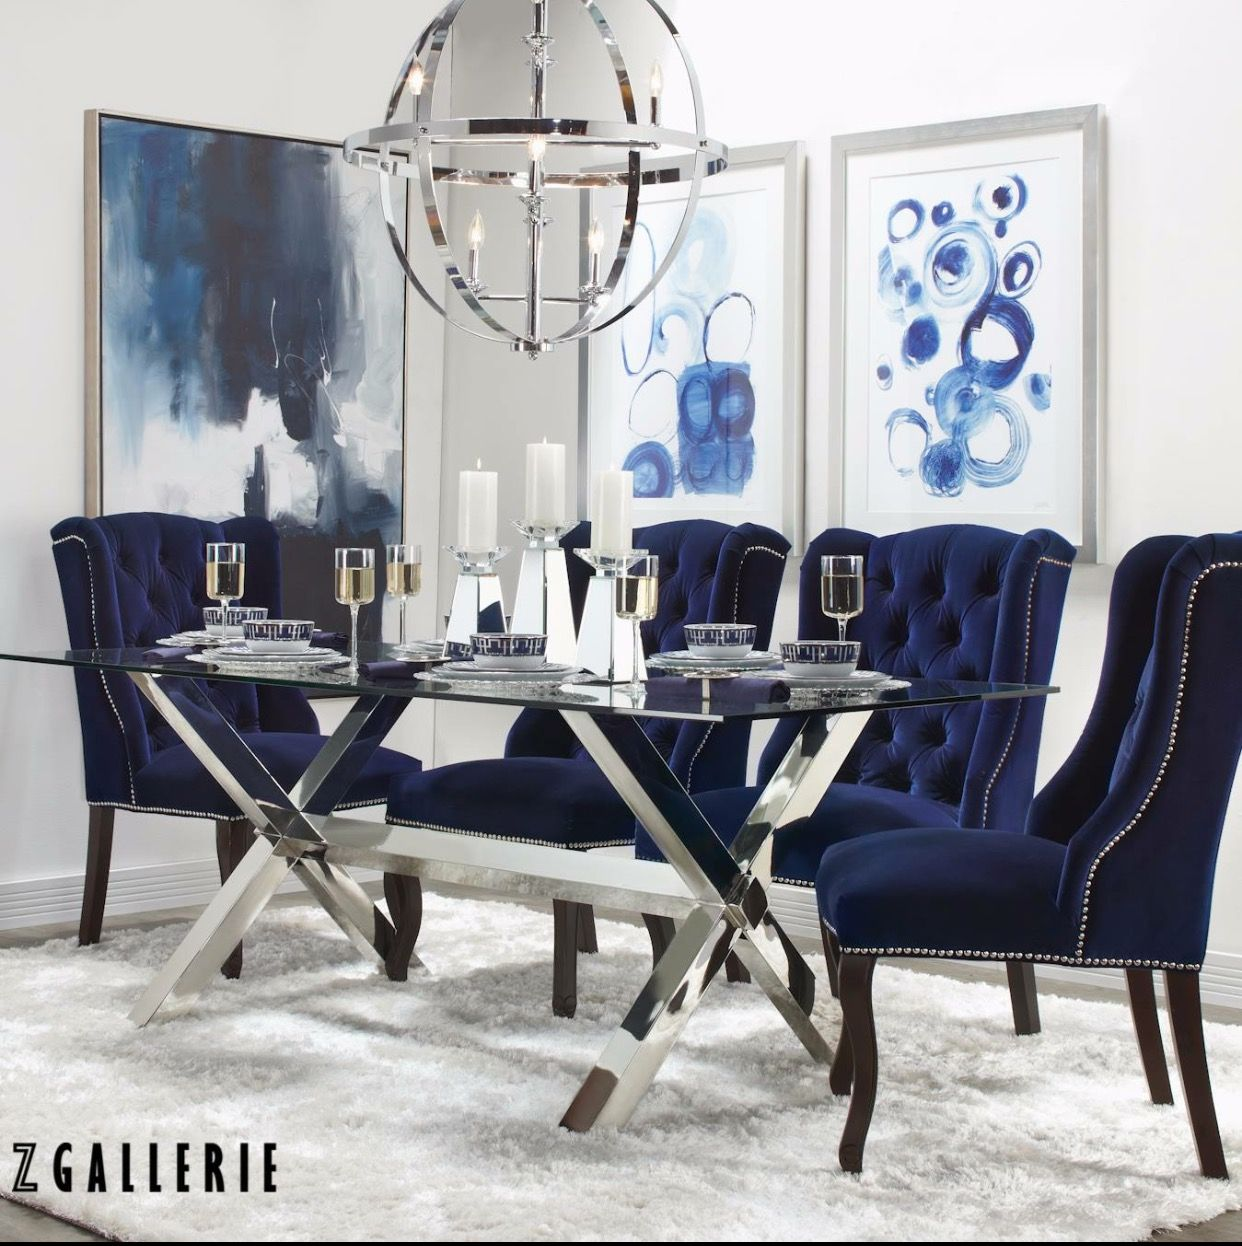 Zgallerie Dining Set Blue Tufted Chairs Ideas For The House